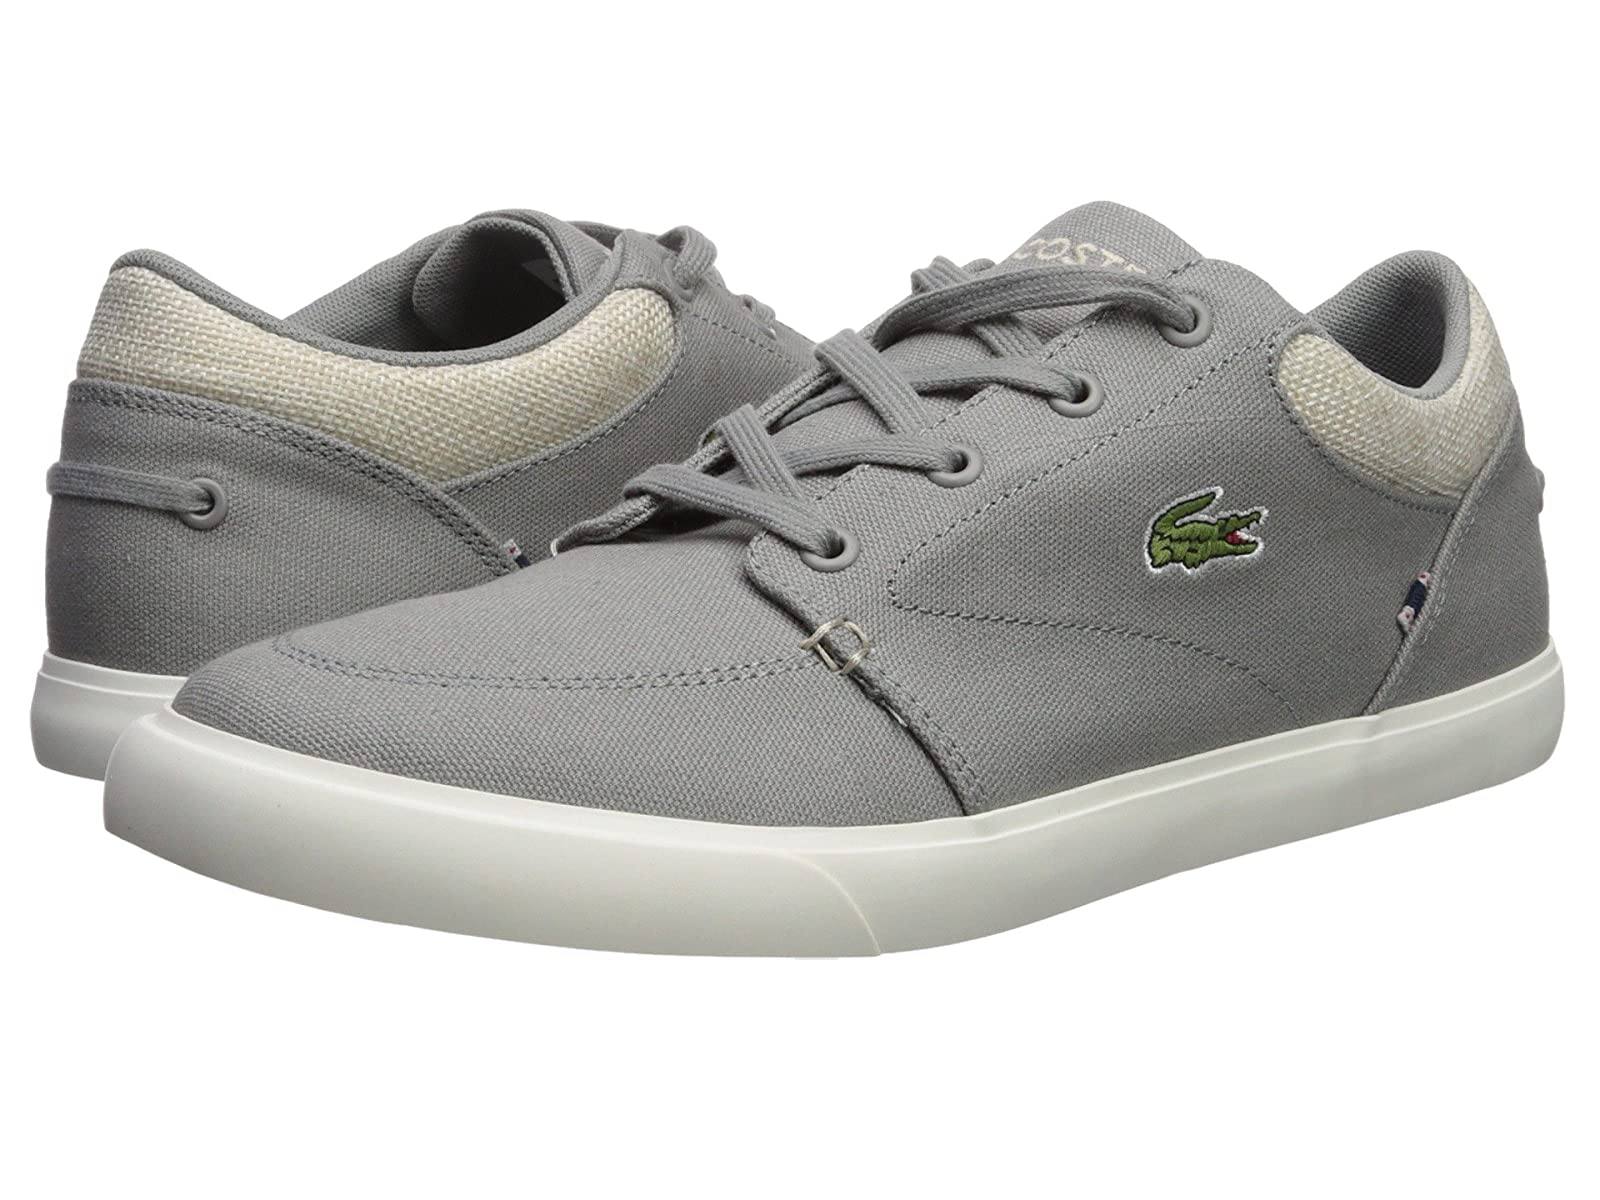 Lacoste Bayliss 218 2Atmospheric grades have affordable shoes